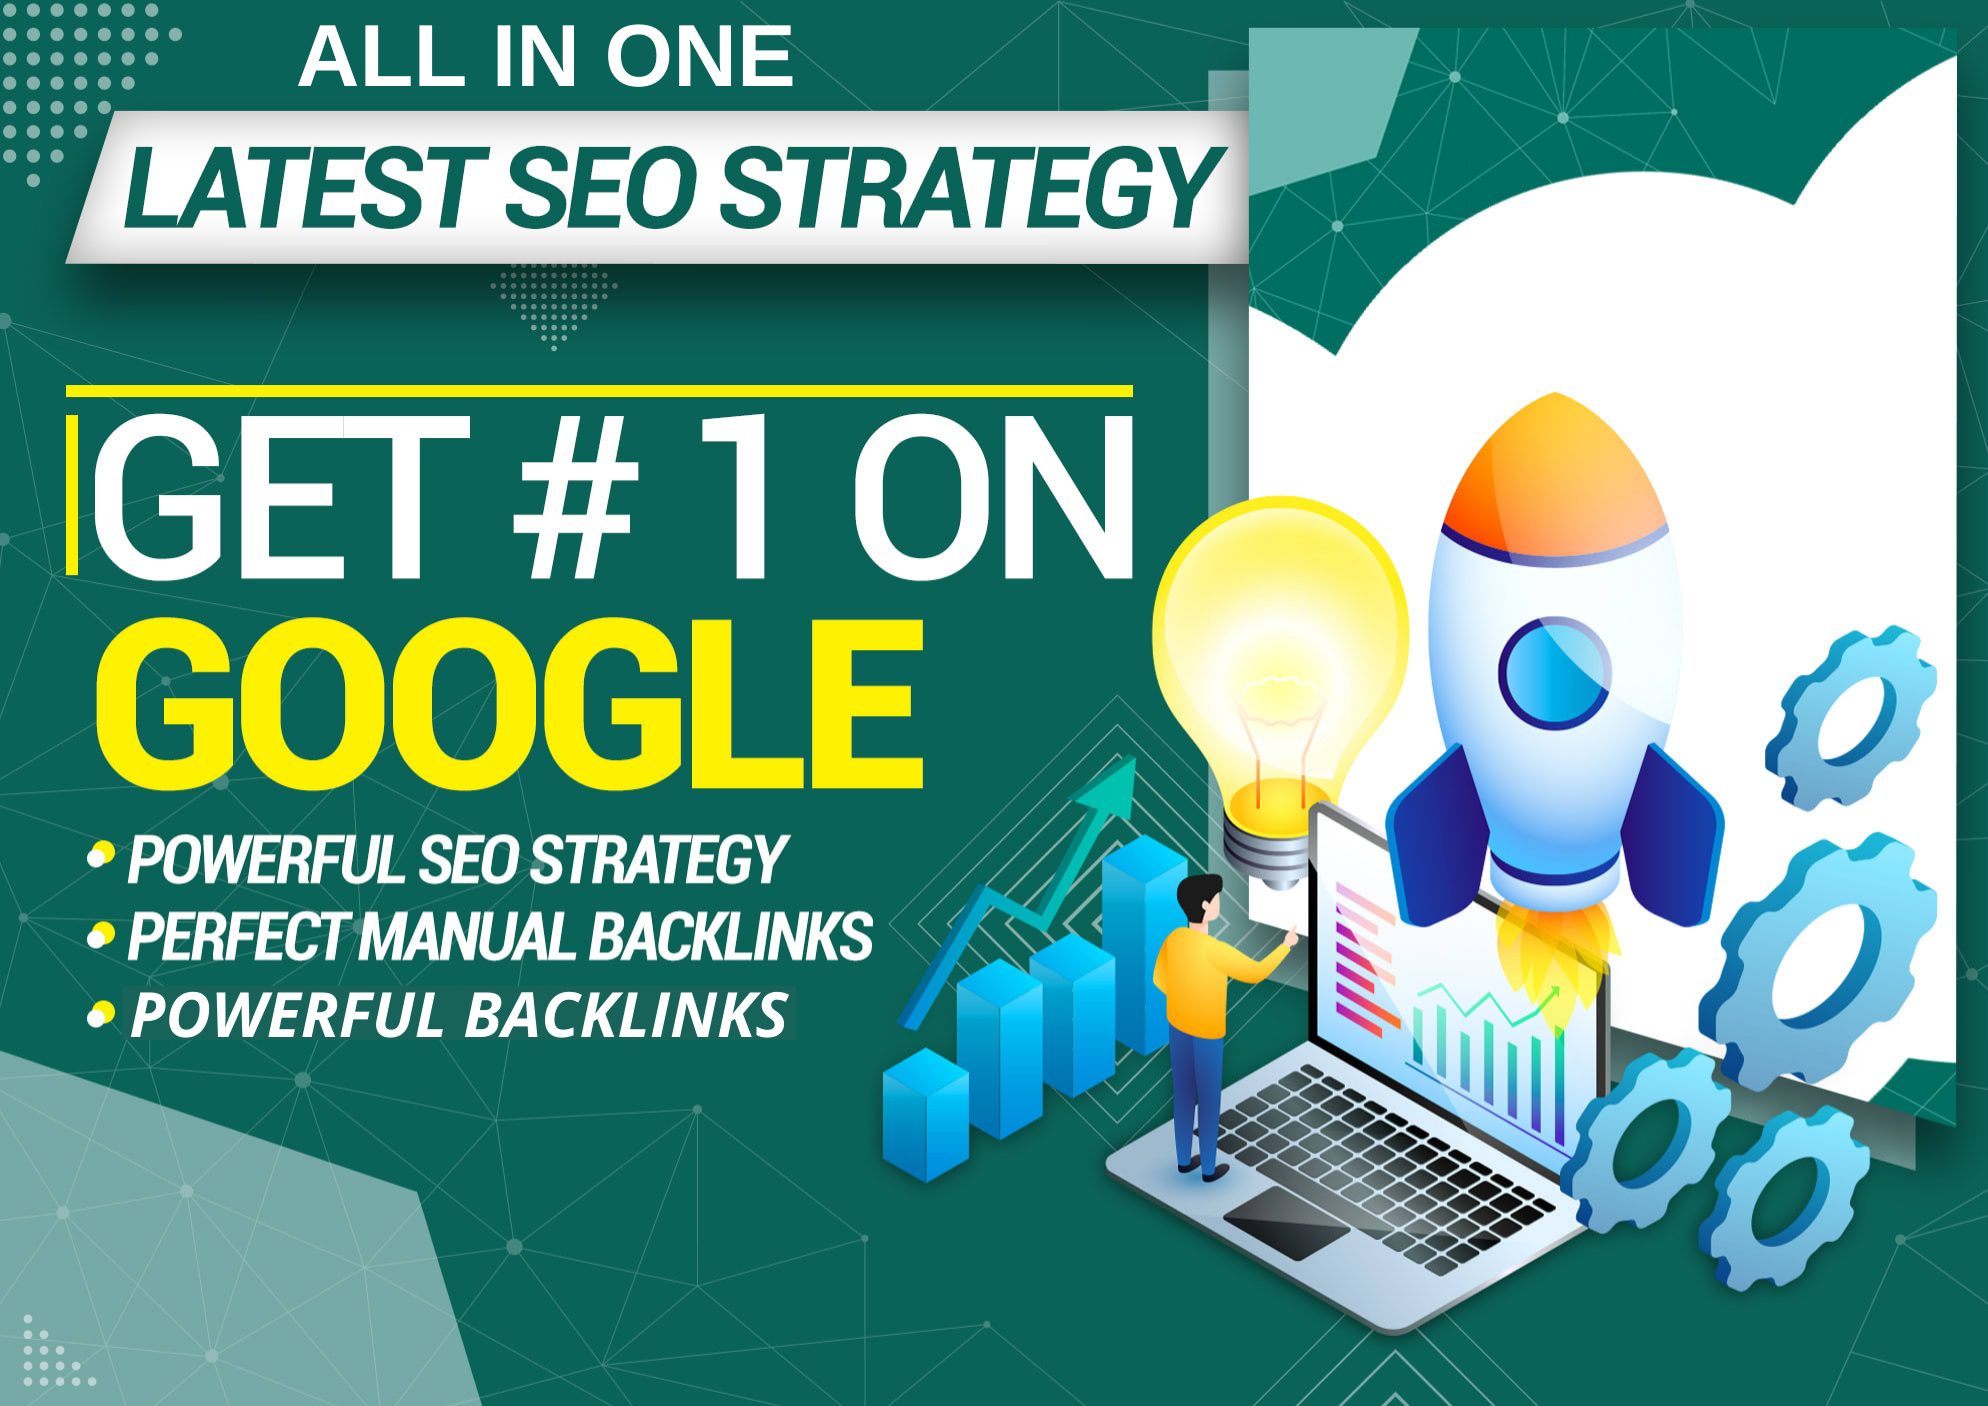 Boost your Site into TOP GOOGLE RANKING with my High DA PA Manually Biggest SEO PACKAGE